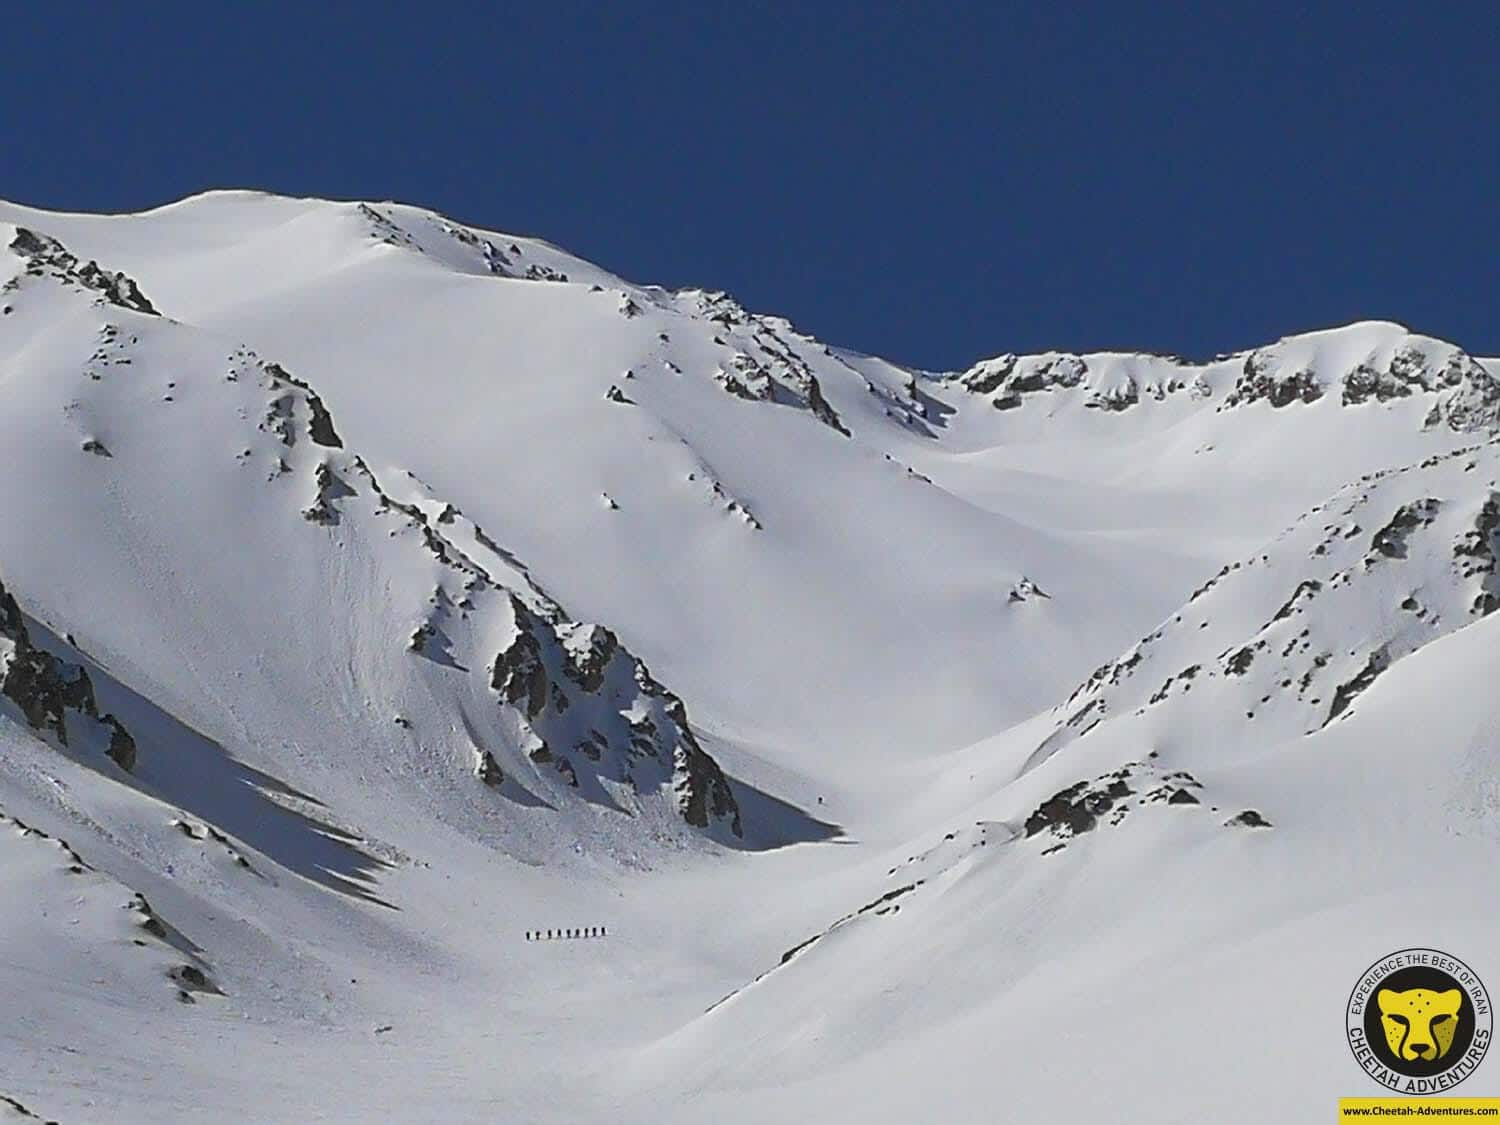 4 Ski Touring On Doberar Range, to the summit of Doberar (4250m), Acclimatization for Damavand Ski Touring